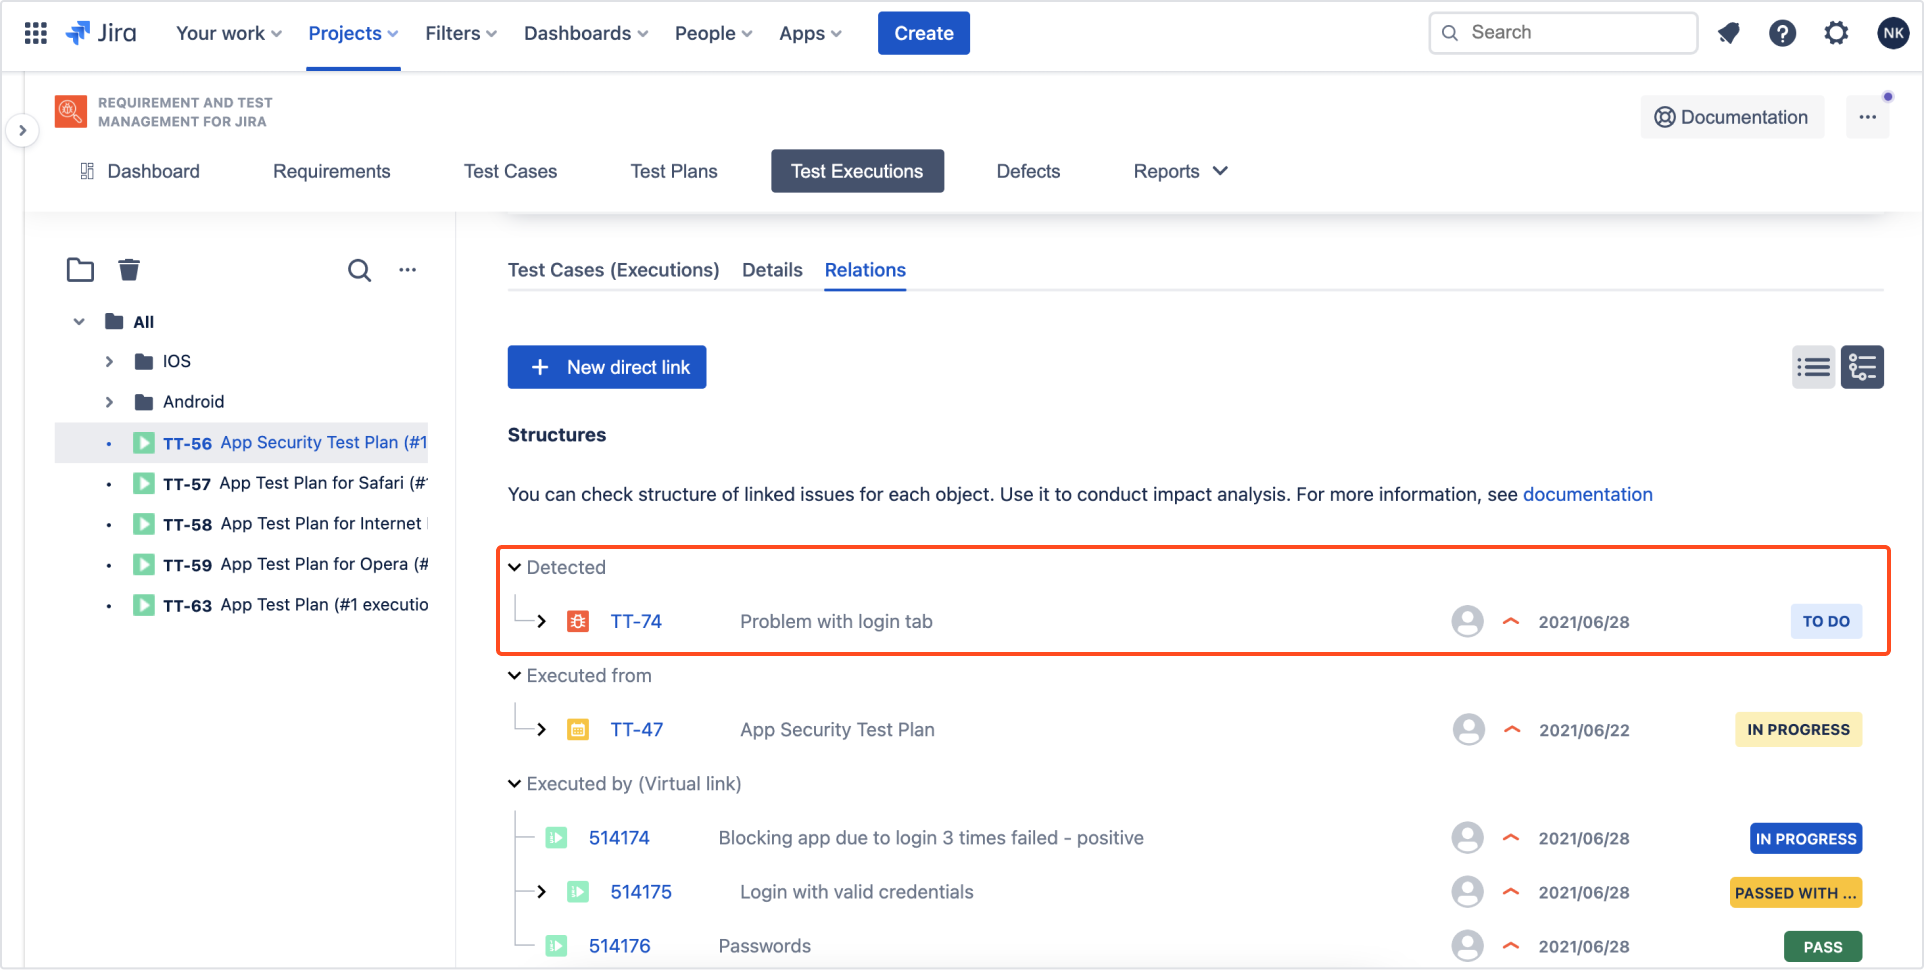 Defects are visible in Relations tab in each related element with Requirements and Test Management for Jira app